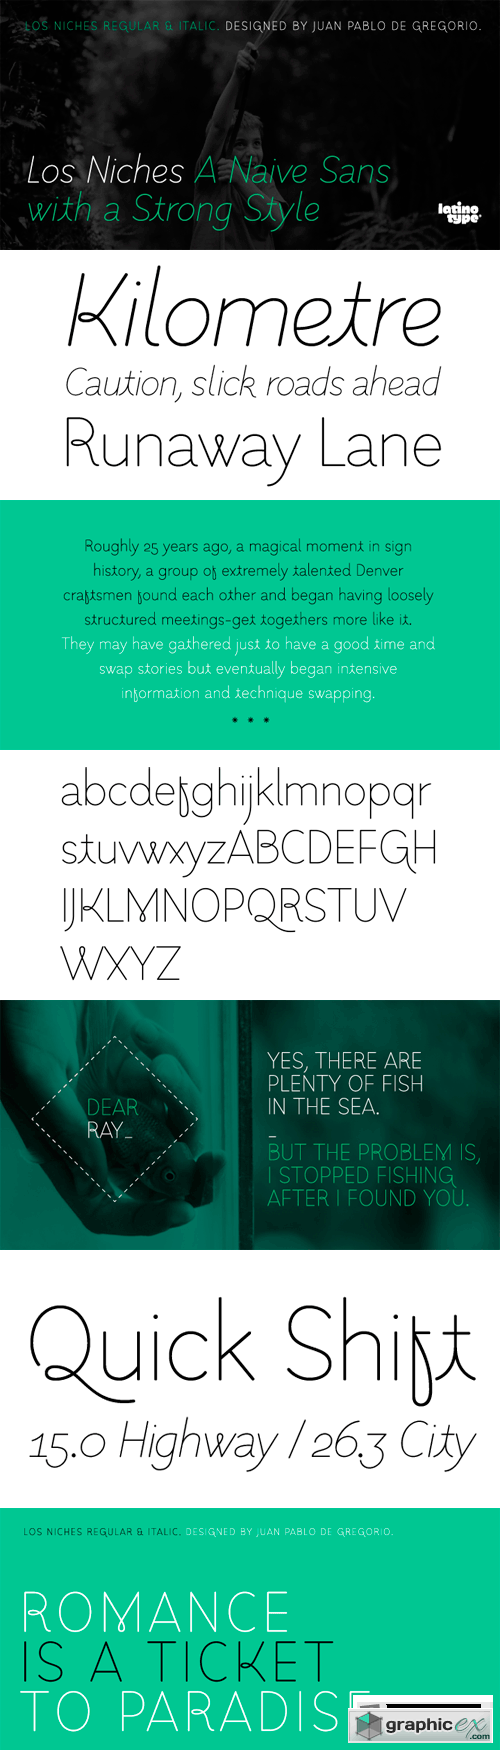 Los Niches Font Family - 2 Fonts for $59